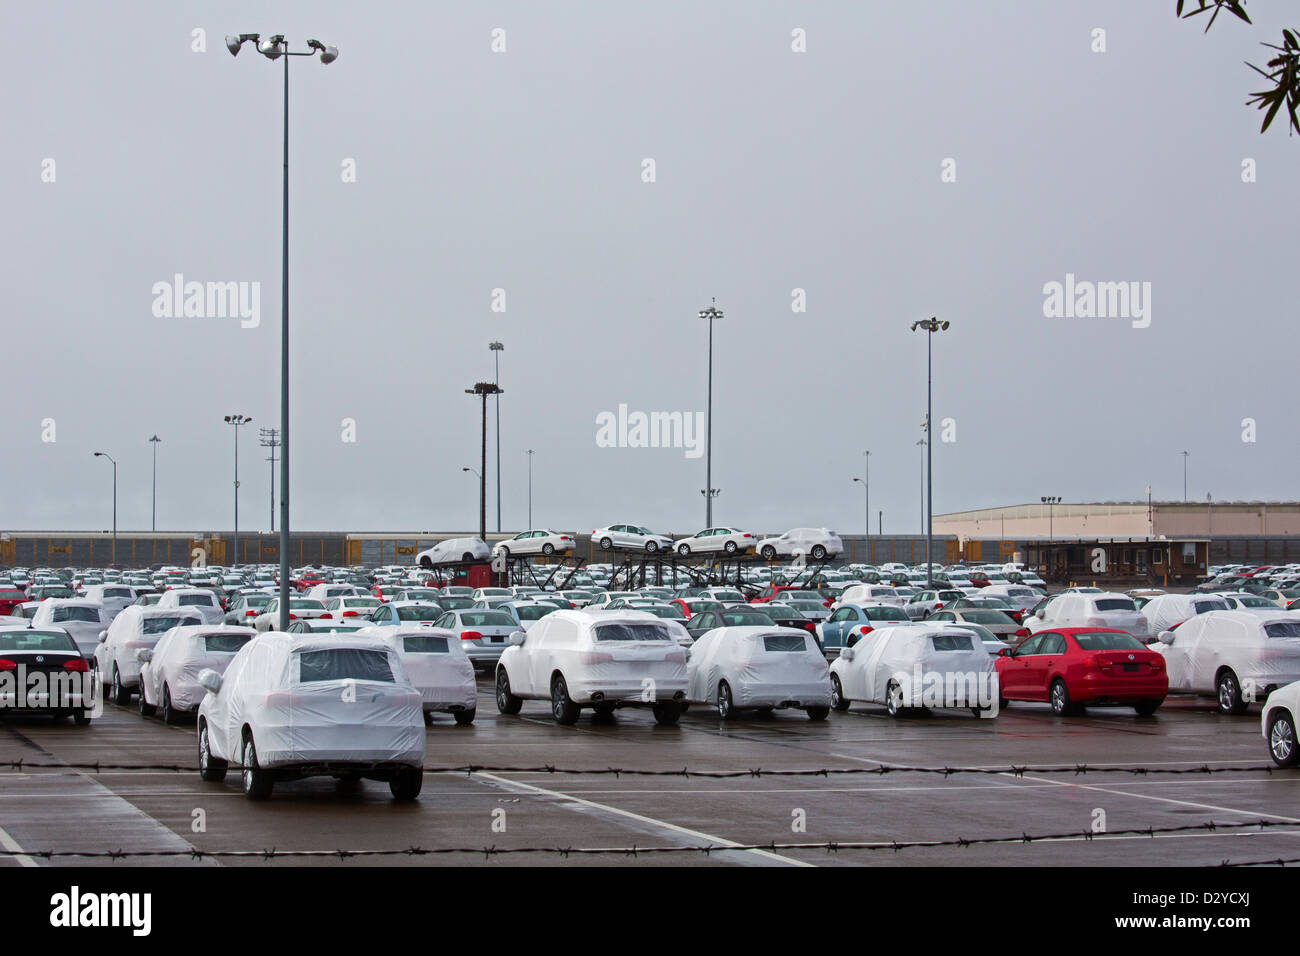 National City, California - Imported cars on the dock at the Port of San Diego. - Stock Image